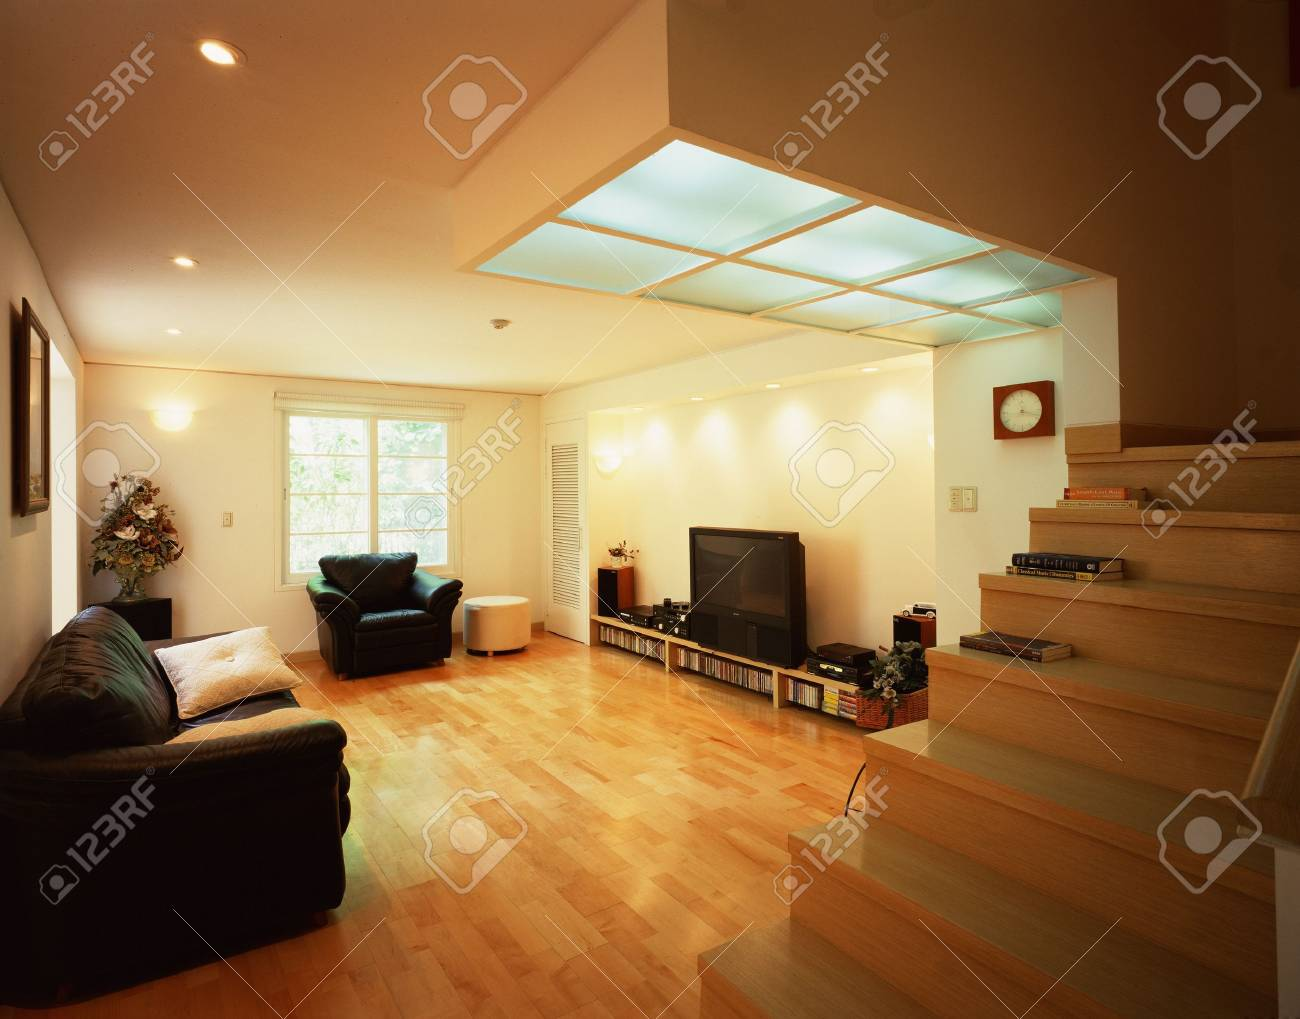 Interior View Stock Photo - 231895